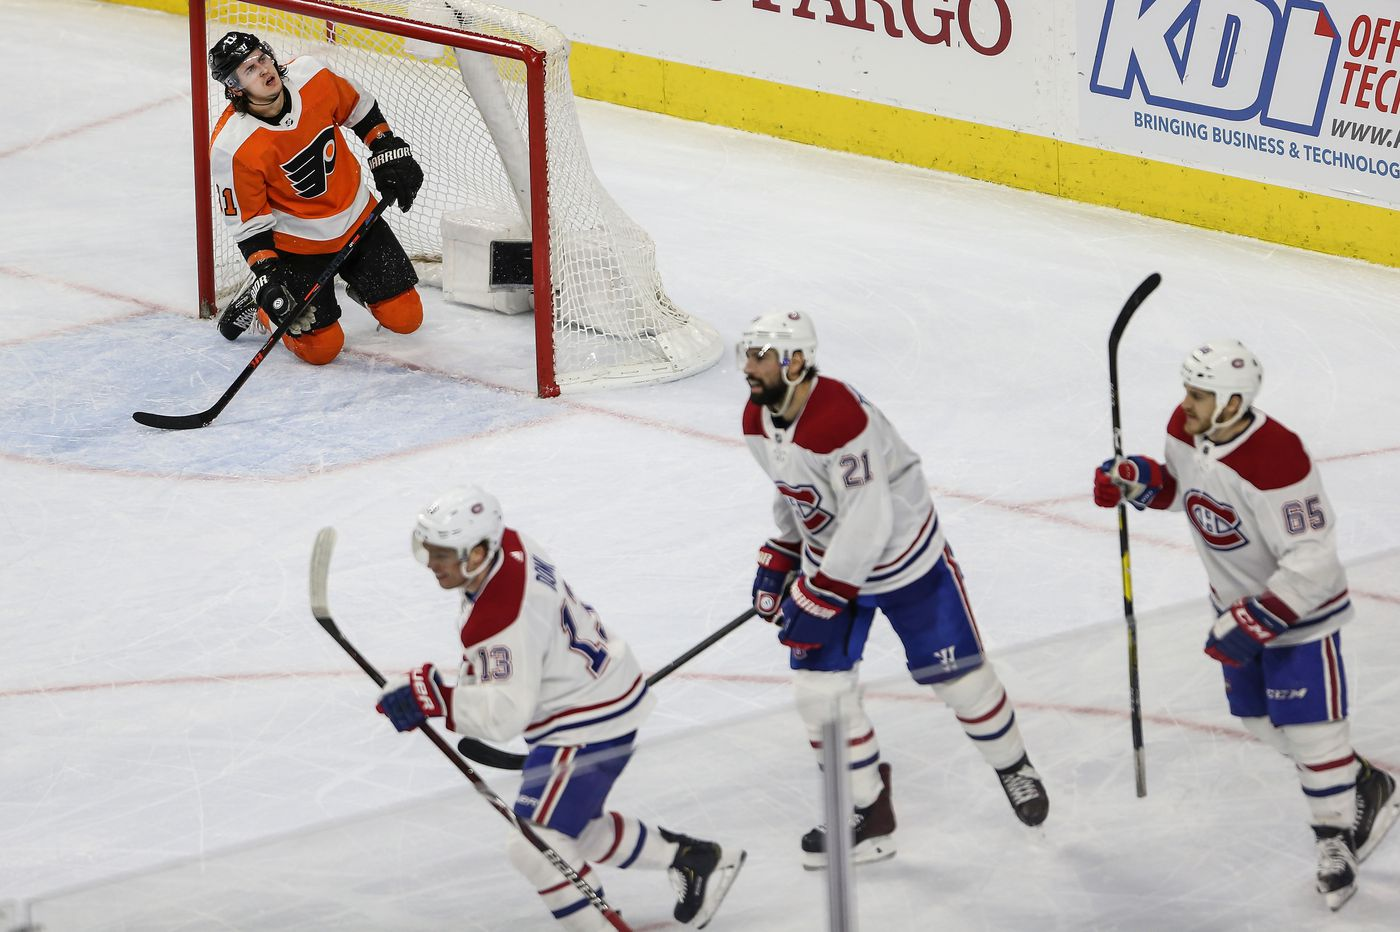 Flyers caught up in shrinking numbers as playoff chances dwindle   Sam Donnellon